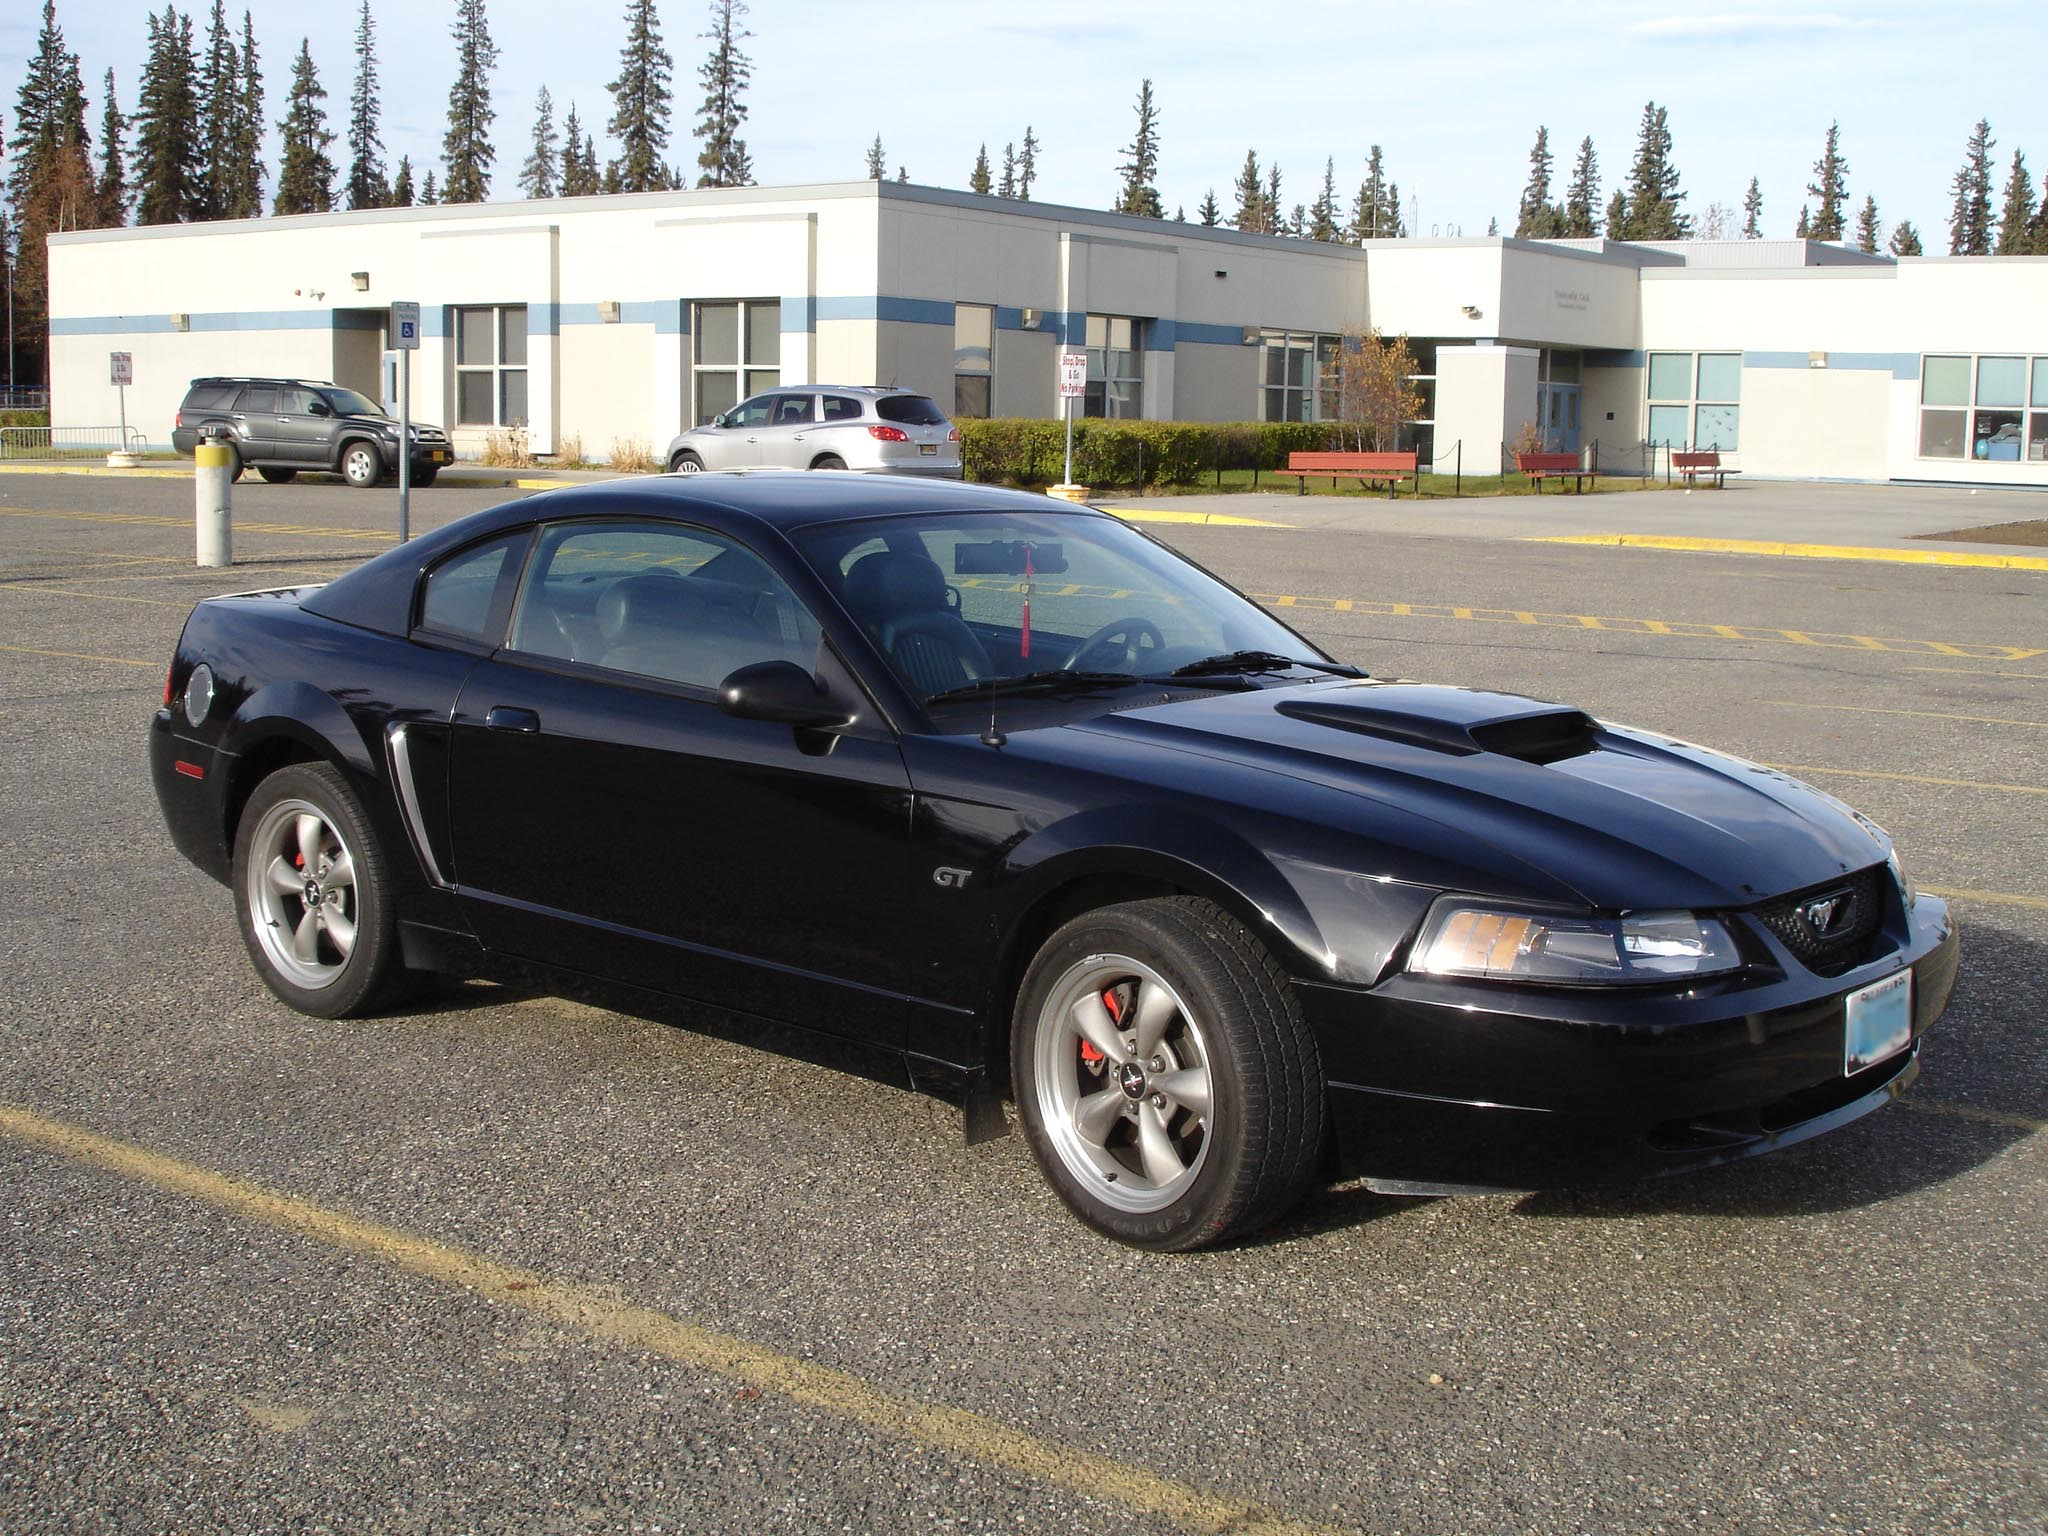 Ford Mustang 2001 photo - 10